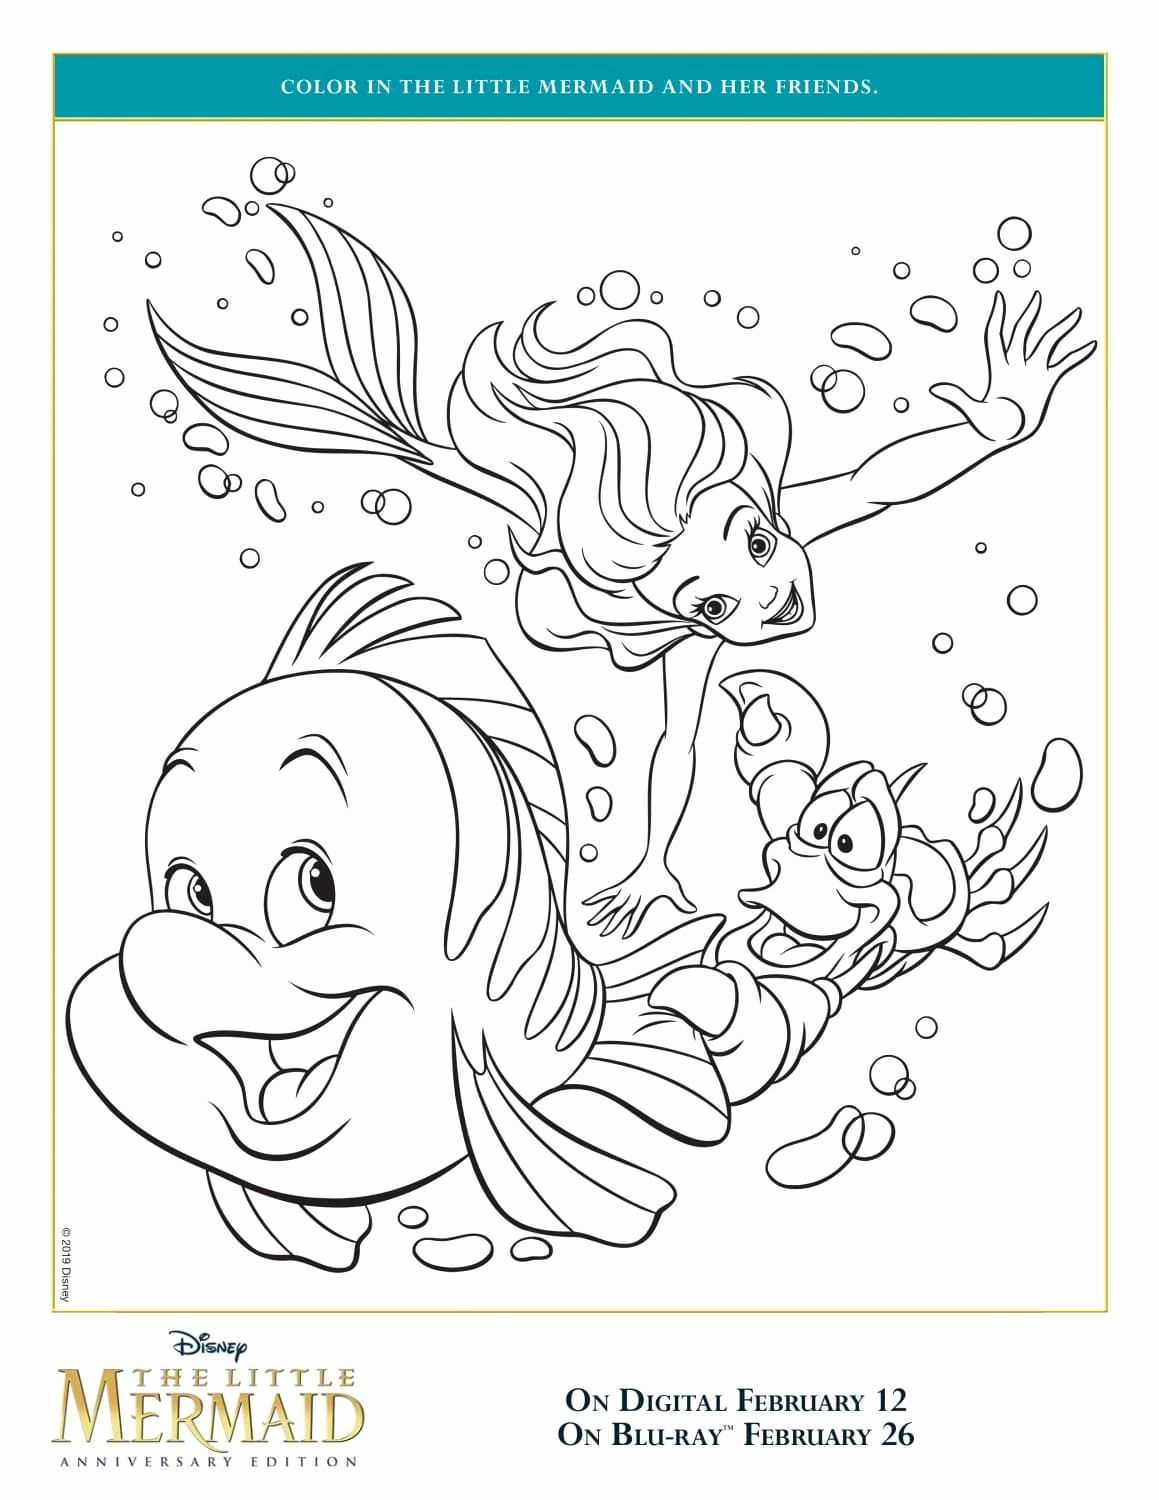 He Little Mermaid Coloring Book Disney Coloring Pages For Kids And Adults 30 Illustrations In 2020 Mermaid Coloring Book Mermaid Coloring Pages Disney Coloring Pages